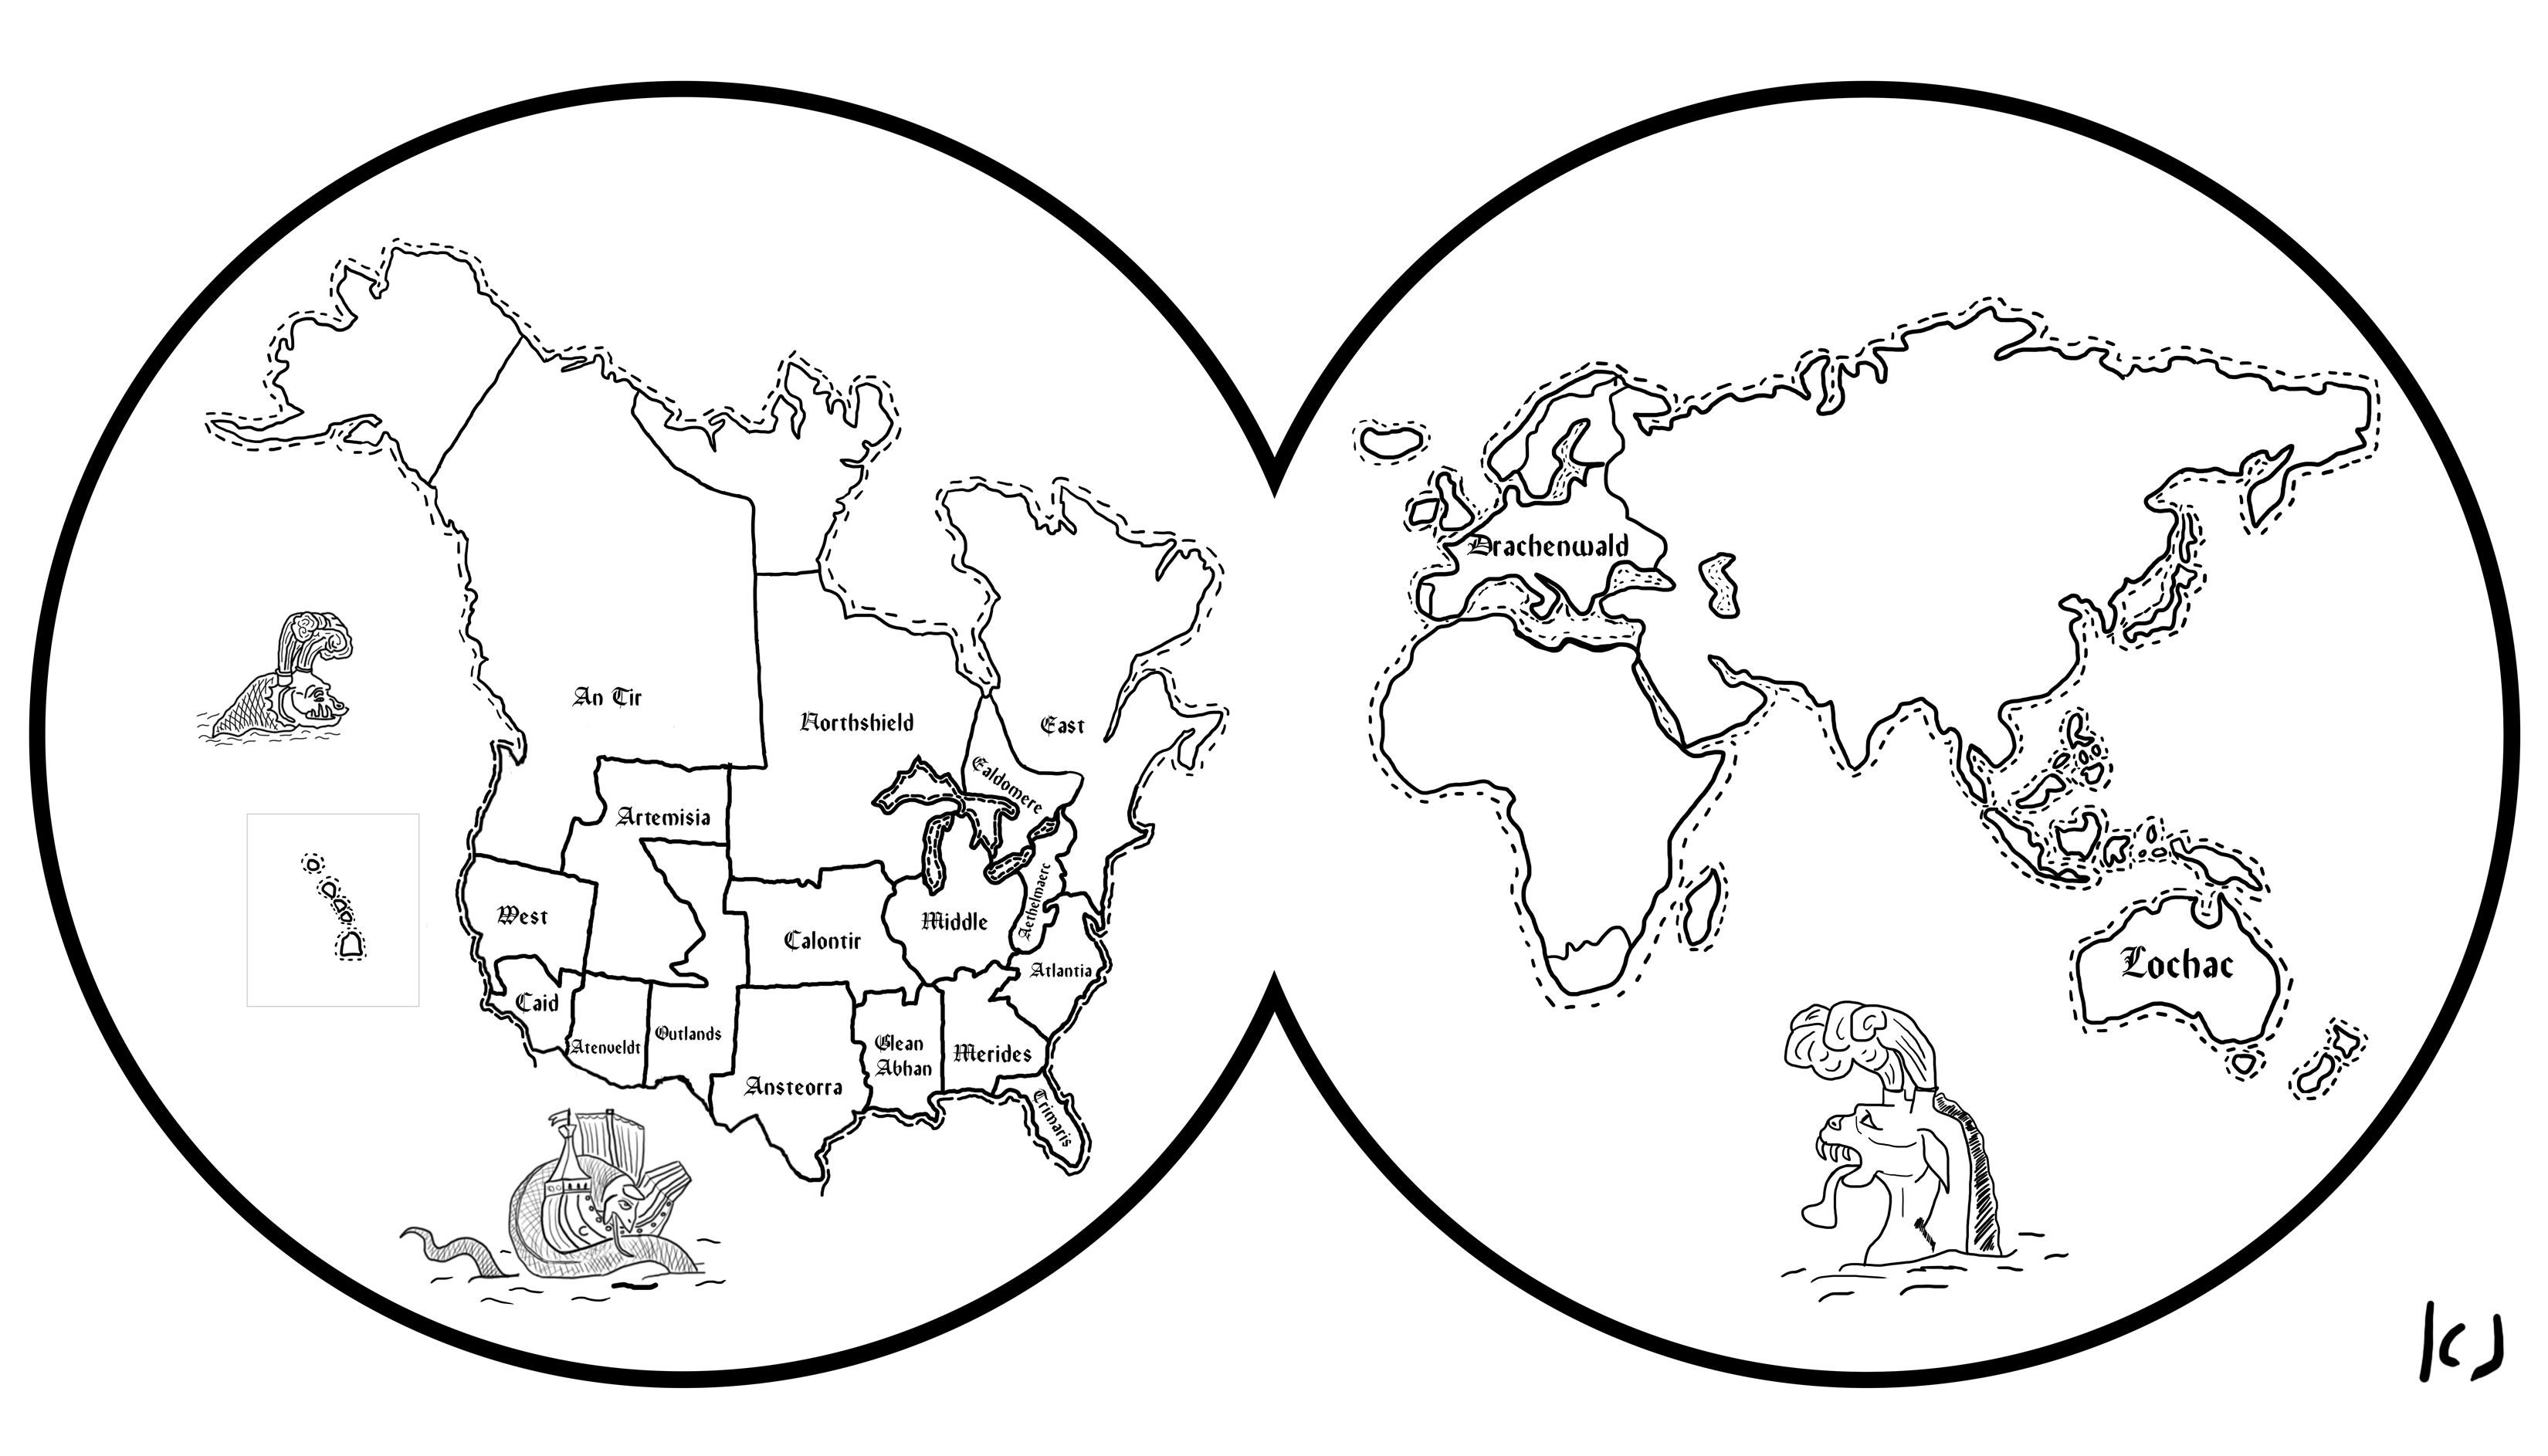 Earth map drawing at getdrawings free for personal use earth 3300x1886 a new version of the known world map blastedoak gumiabroncs Image collections